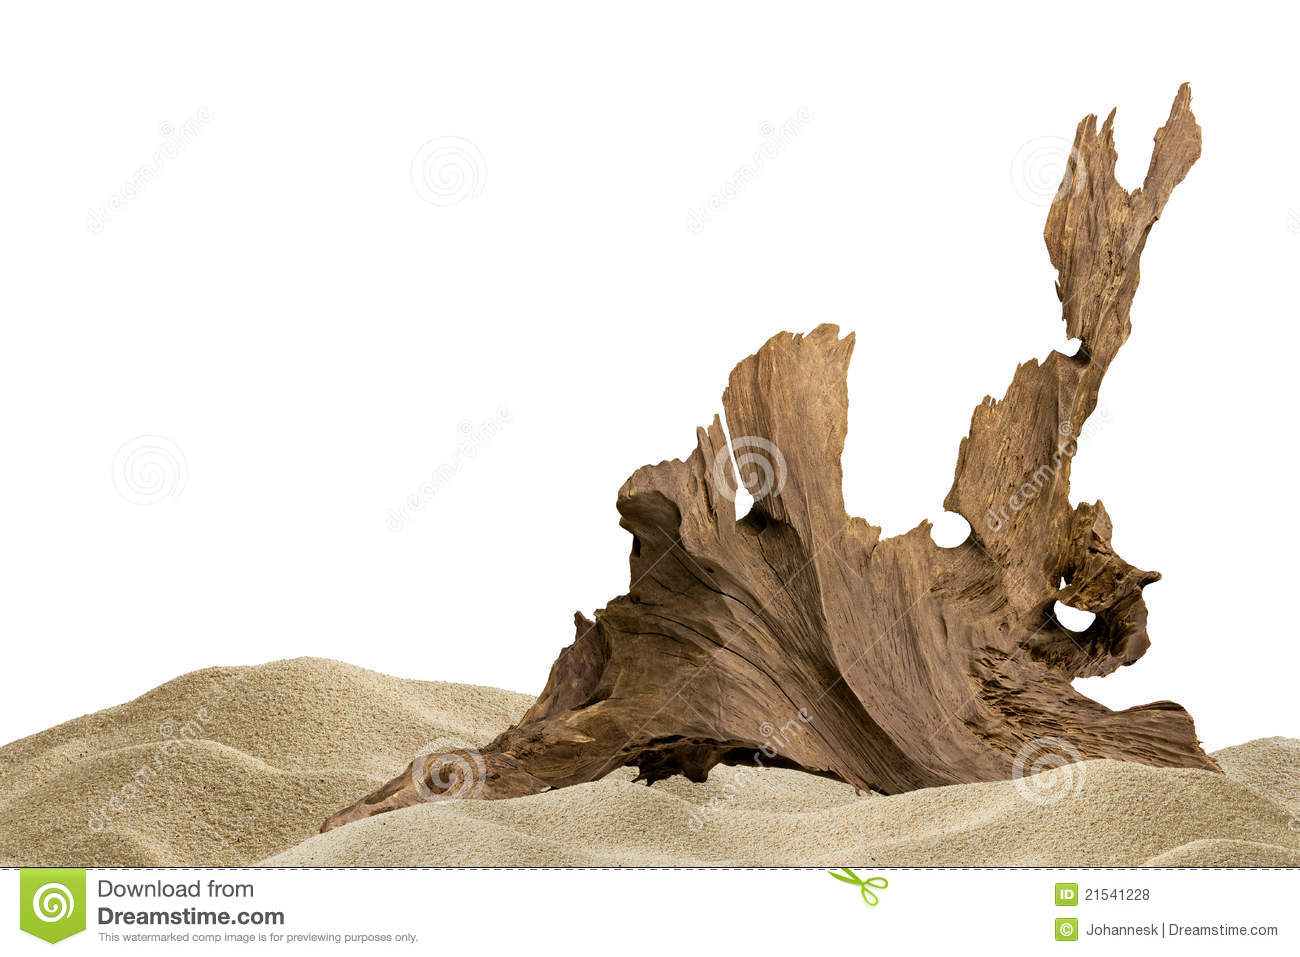 Driftwood clipart #10, Download drawings